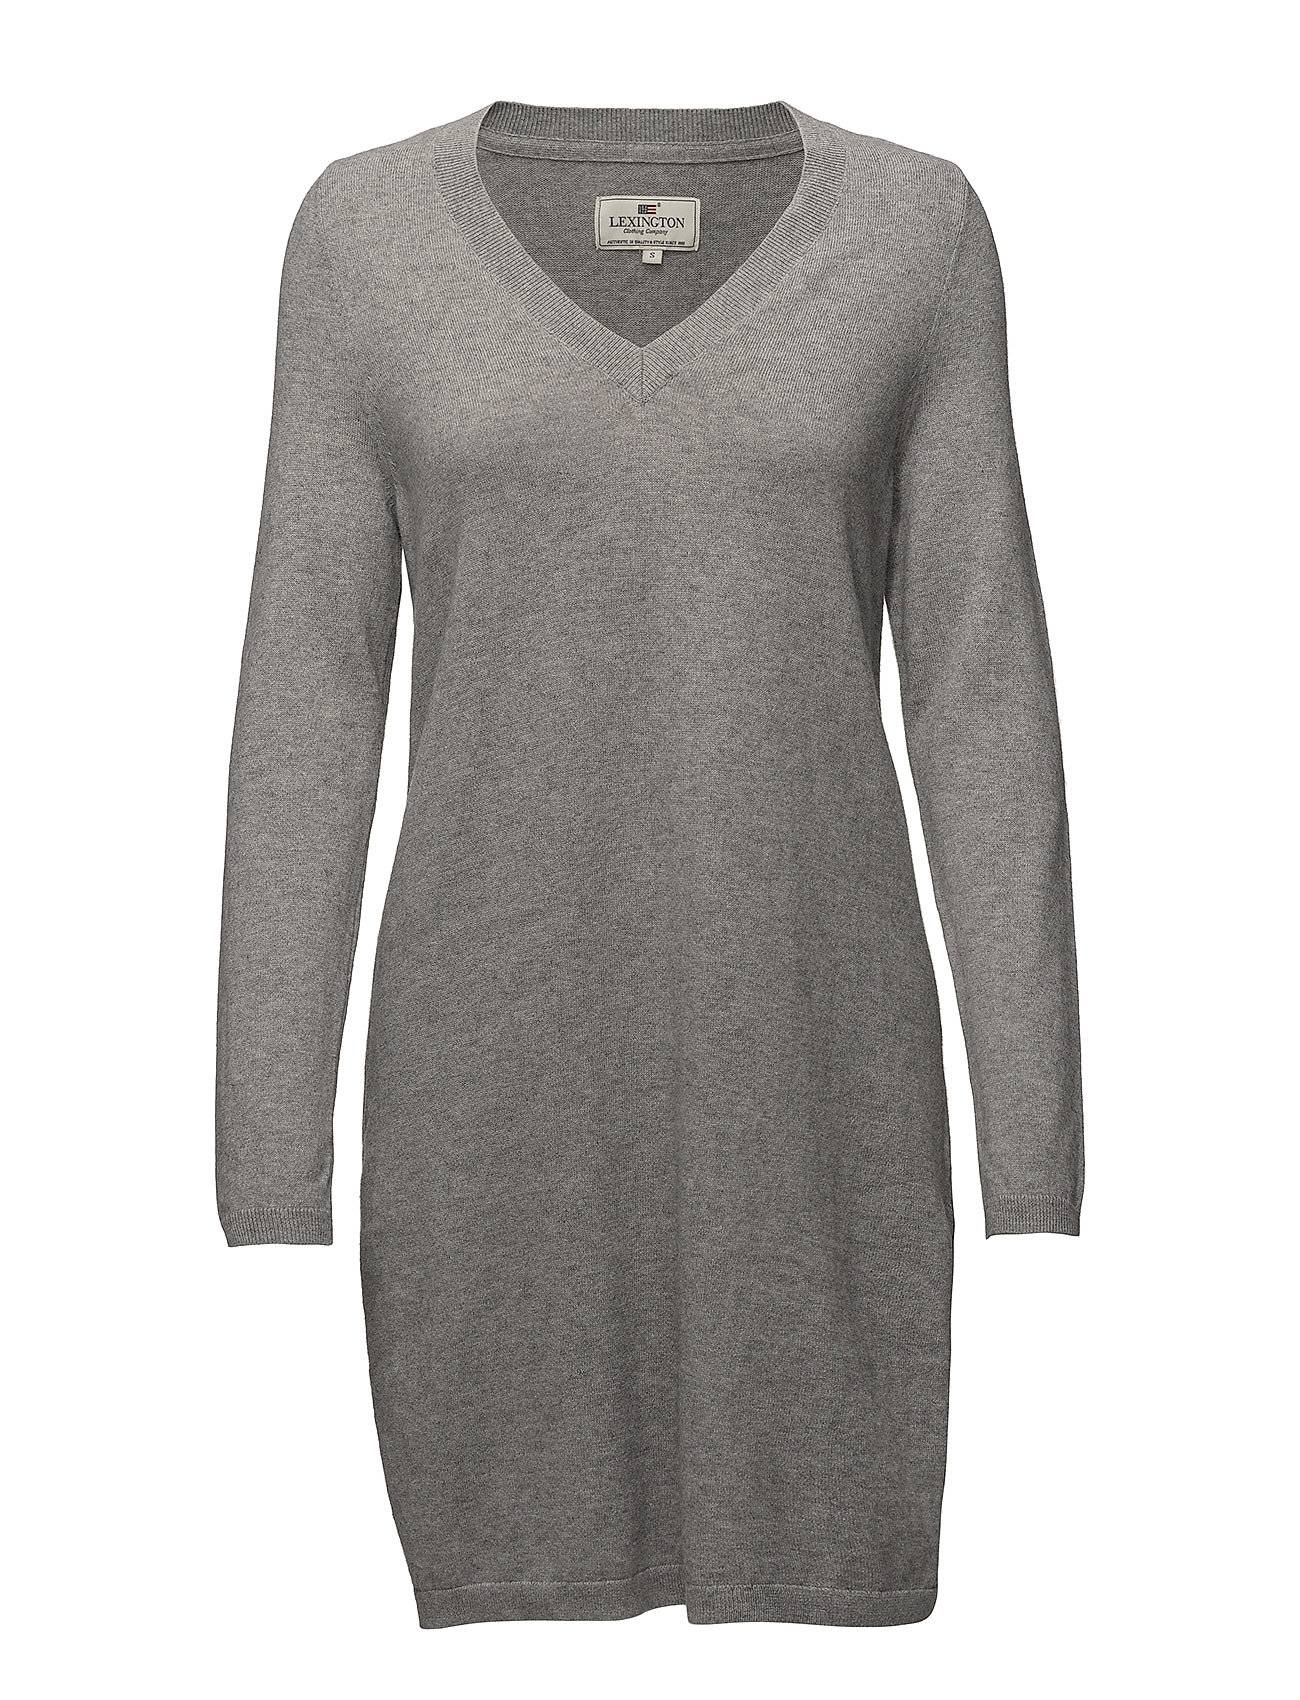 Lexington Clothing Eli Knit Tunic